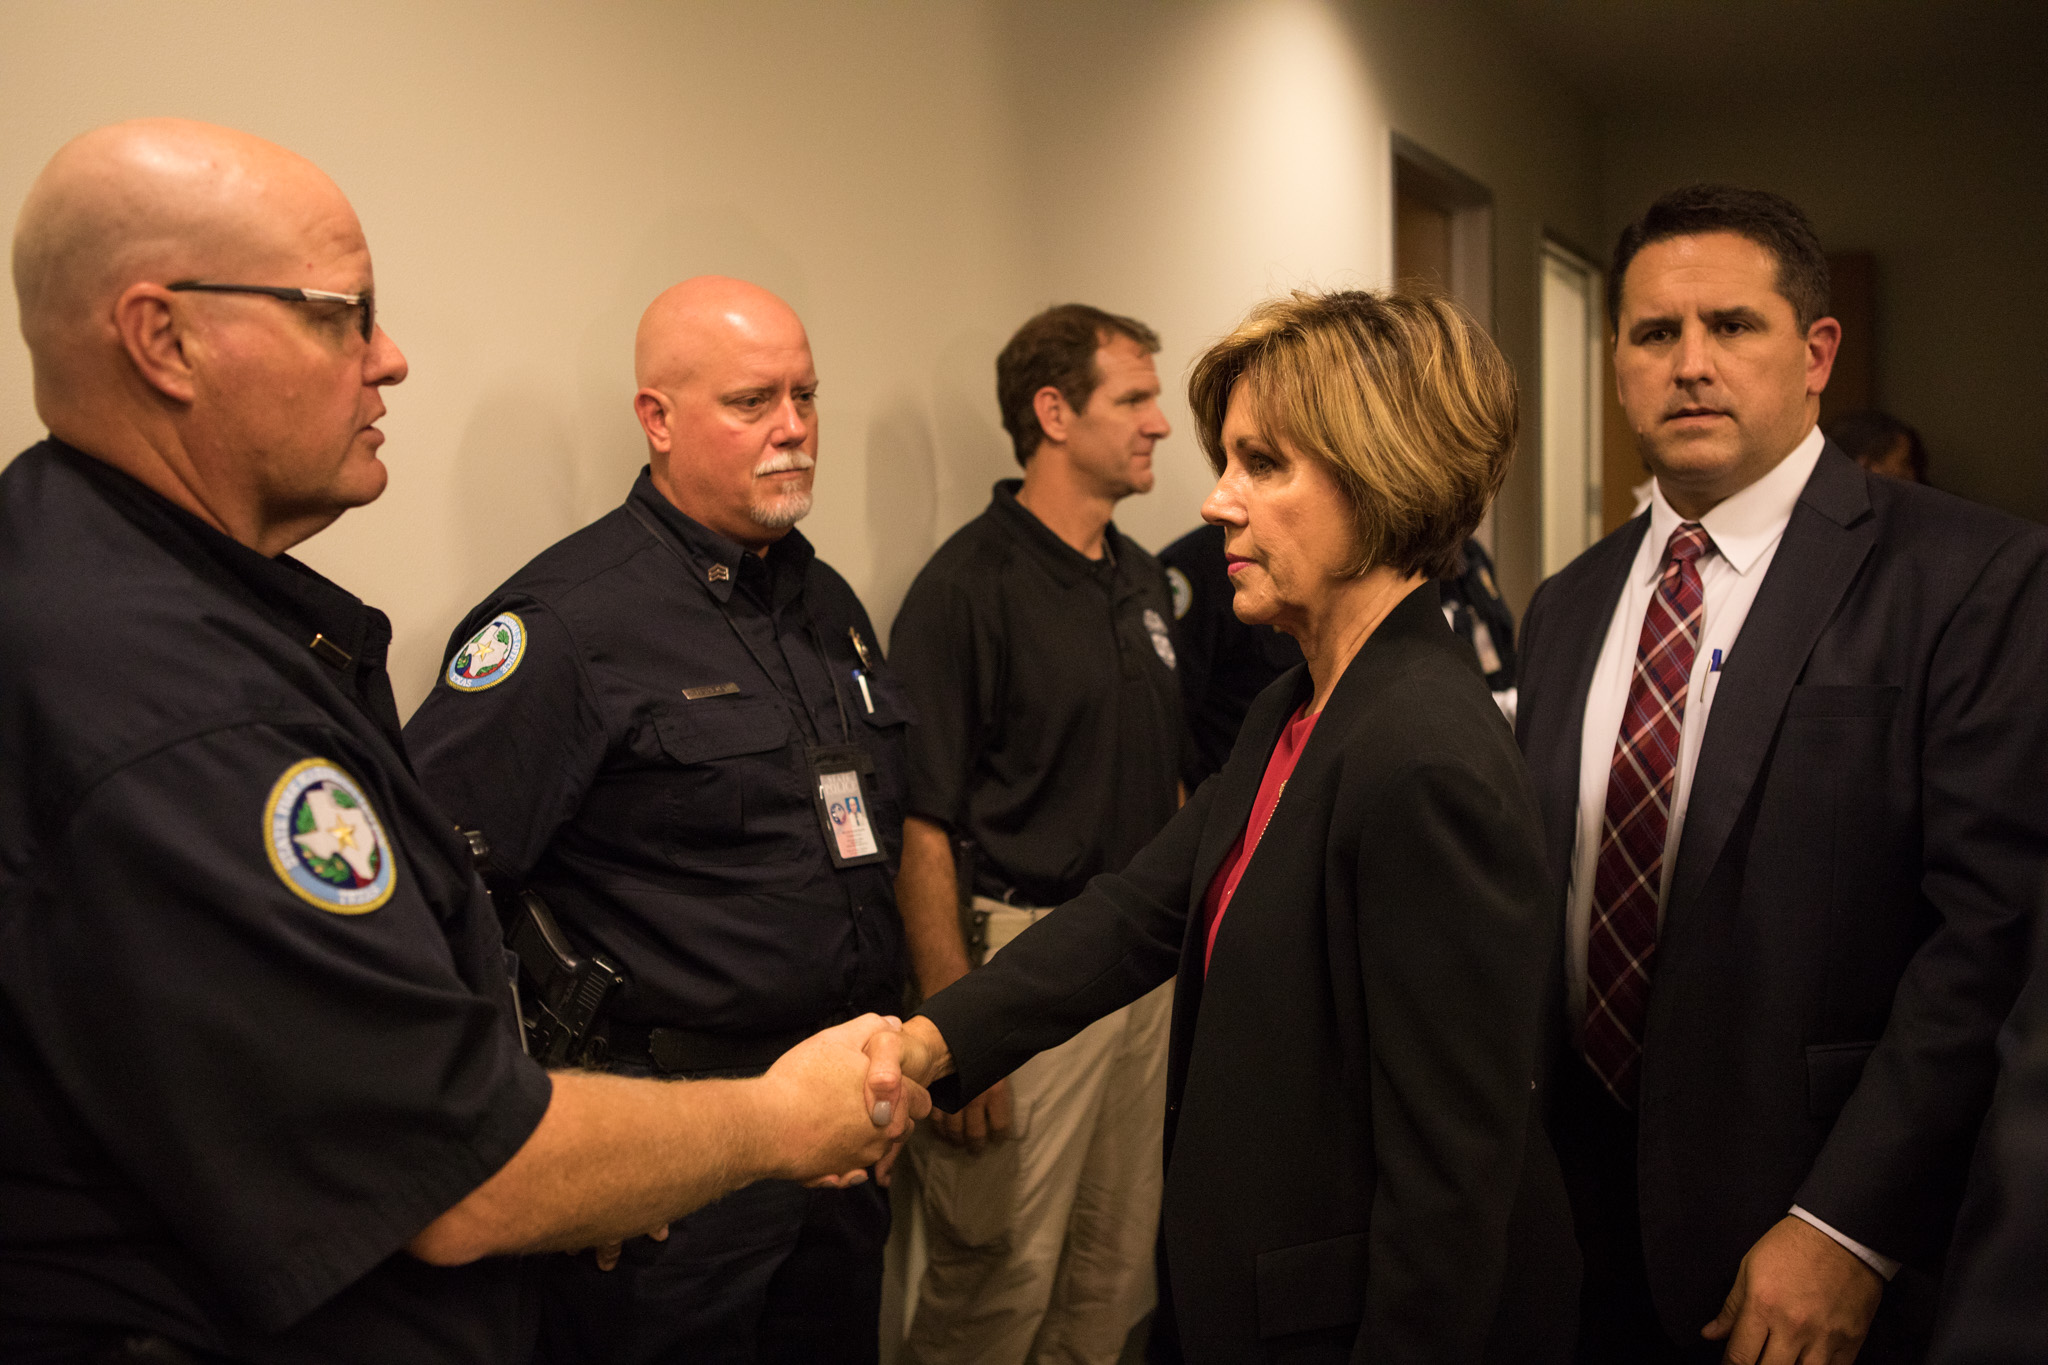 City Manager Sheryl Sculley shakes hands after a press conference regarding the Ingram Shopping Center fire investigation.